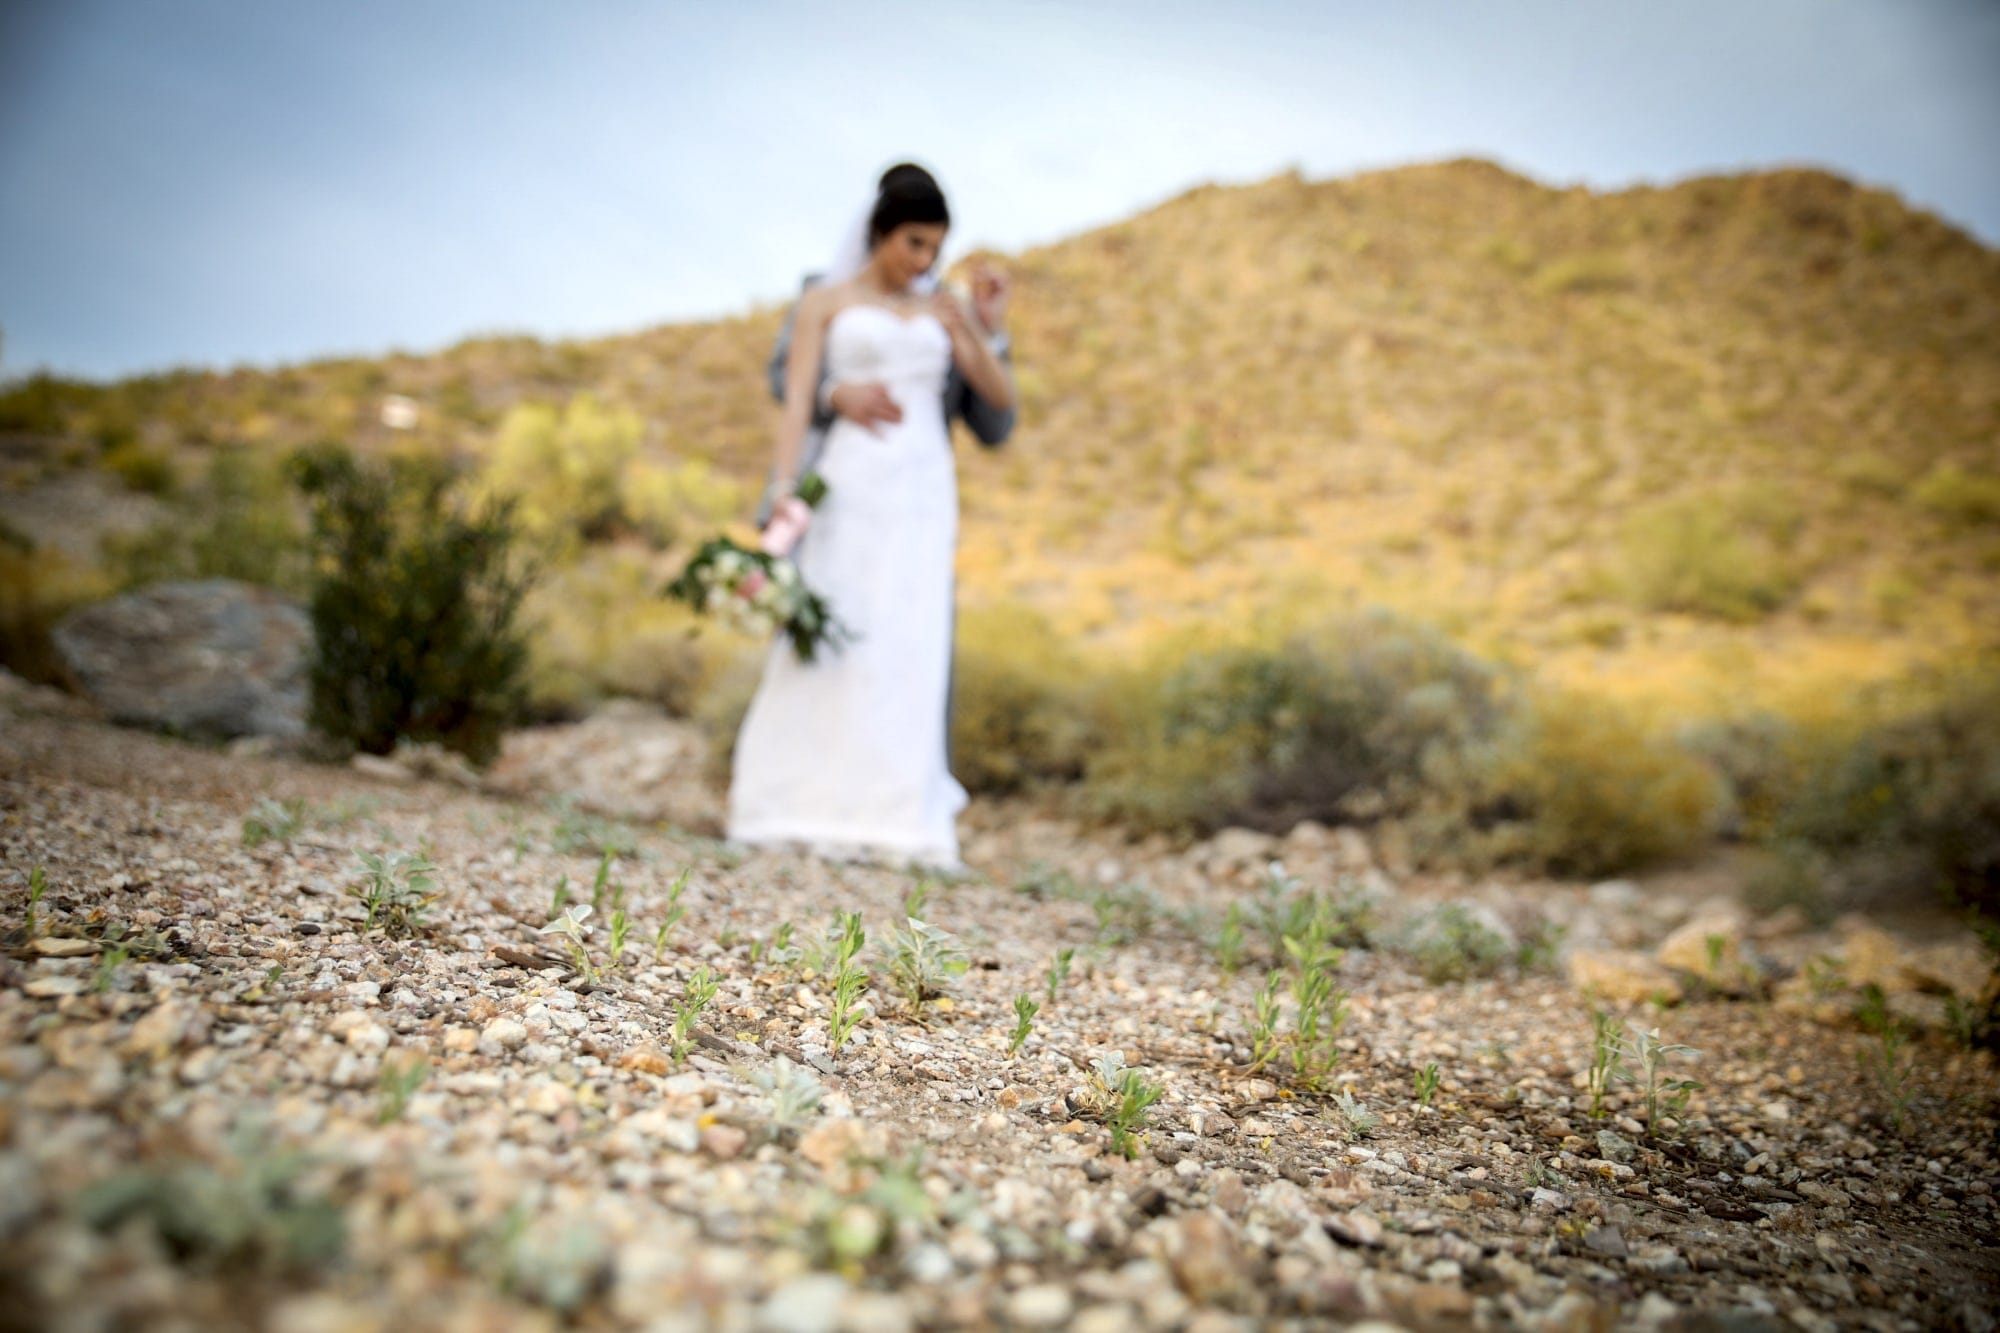 woman in white dress walking on dirt road during daytime